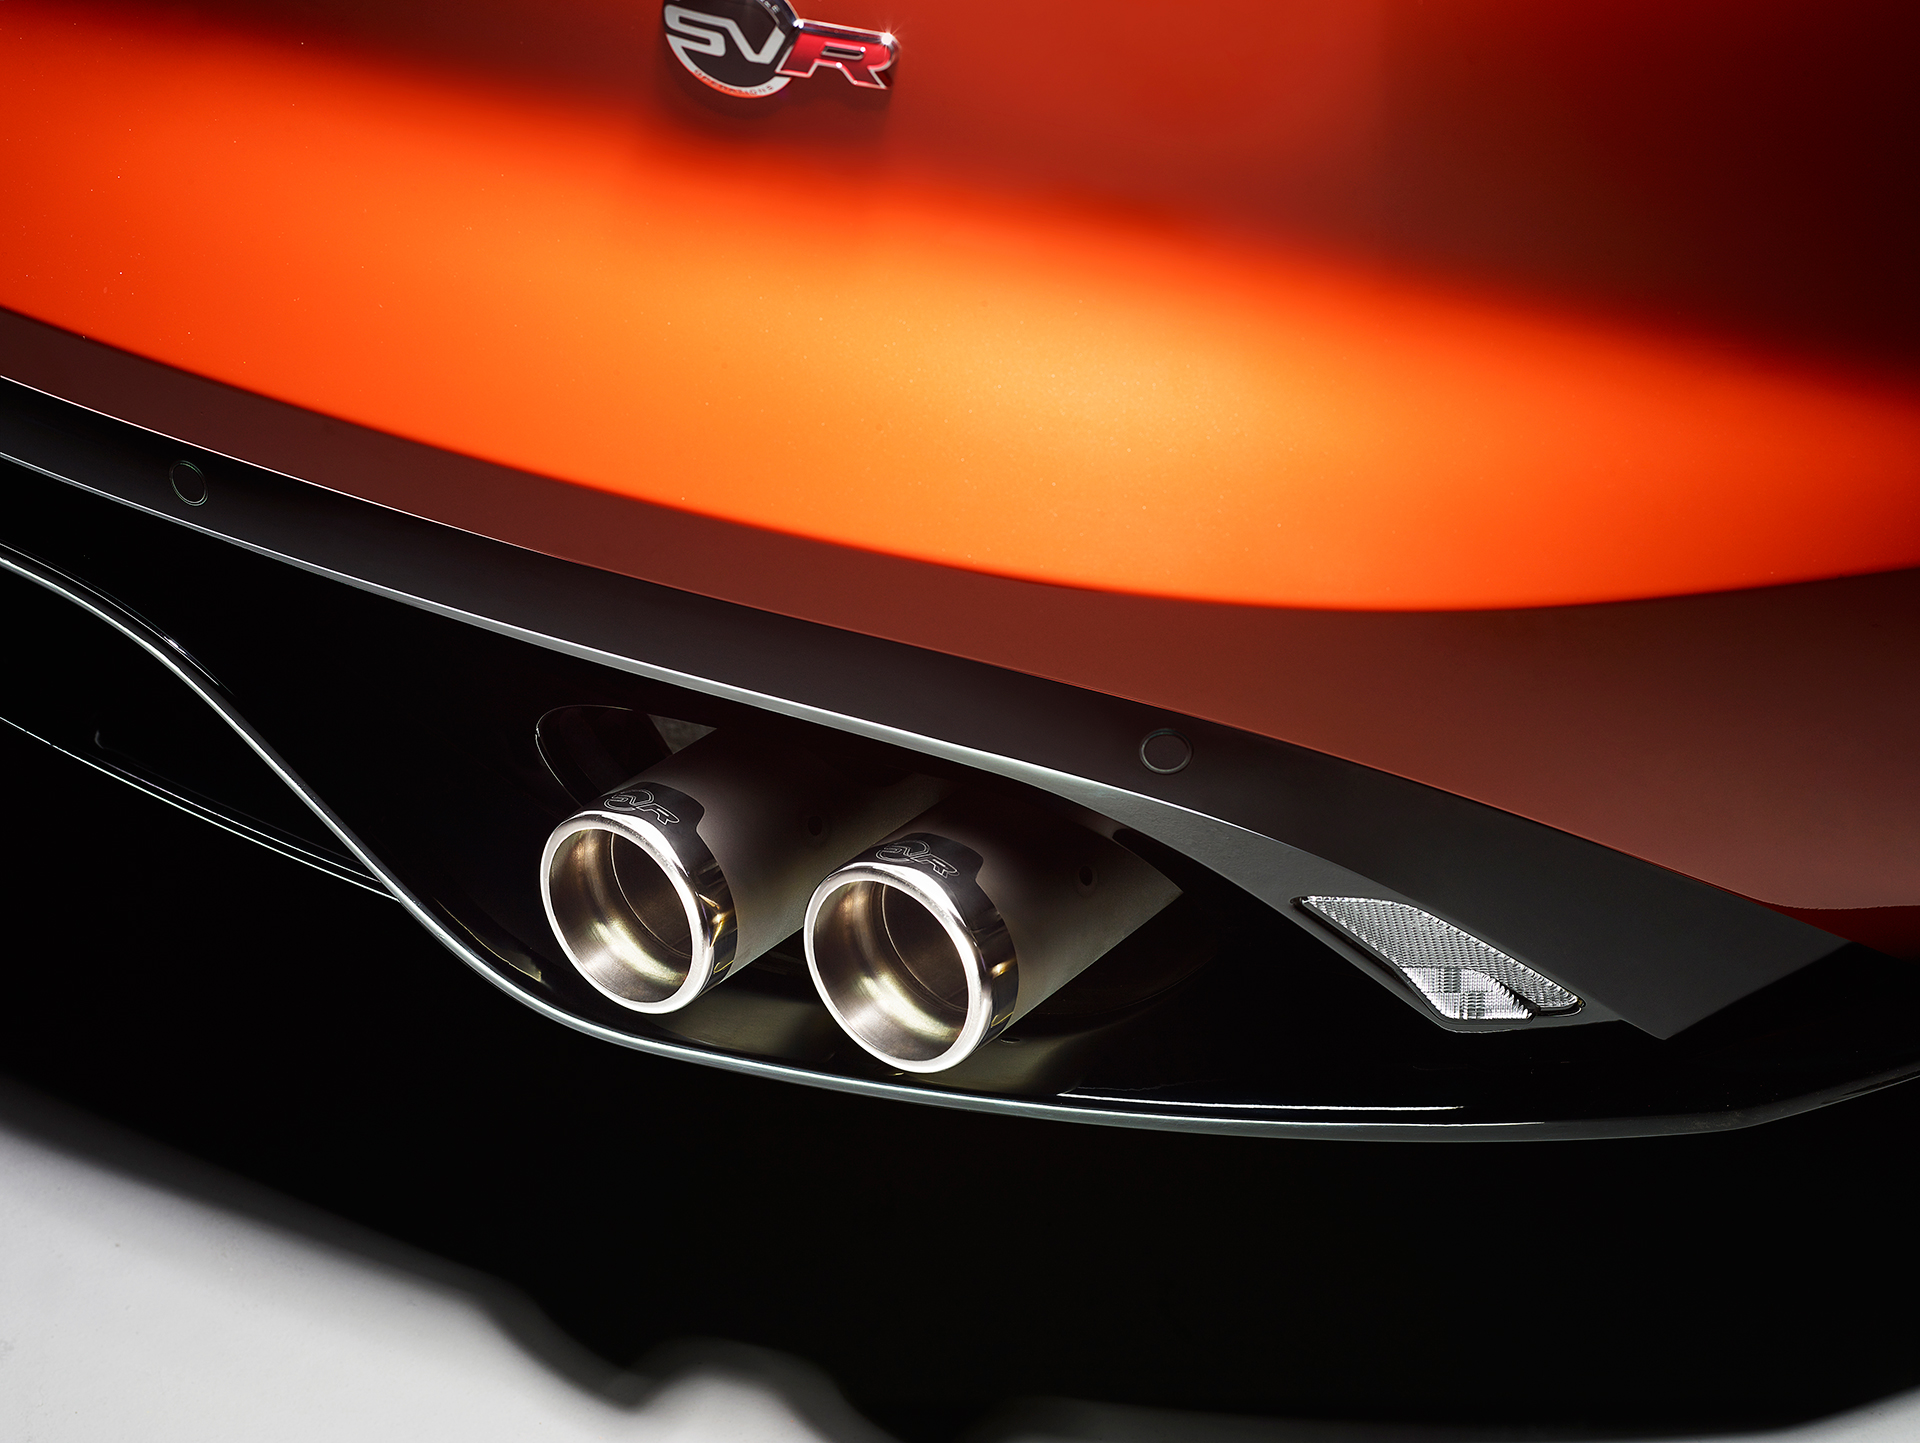 Jaguar F-TYPE SVR - 2016 - échappement / exhaust pipes